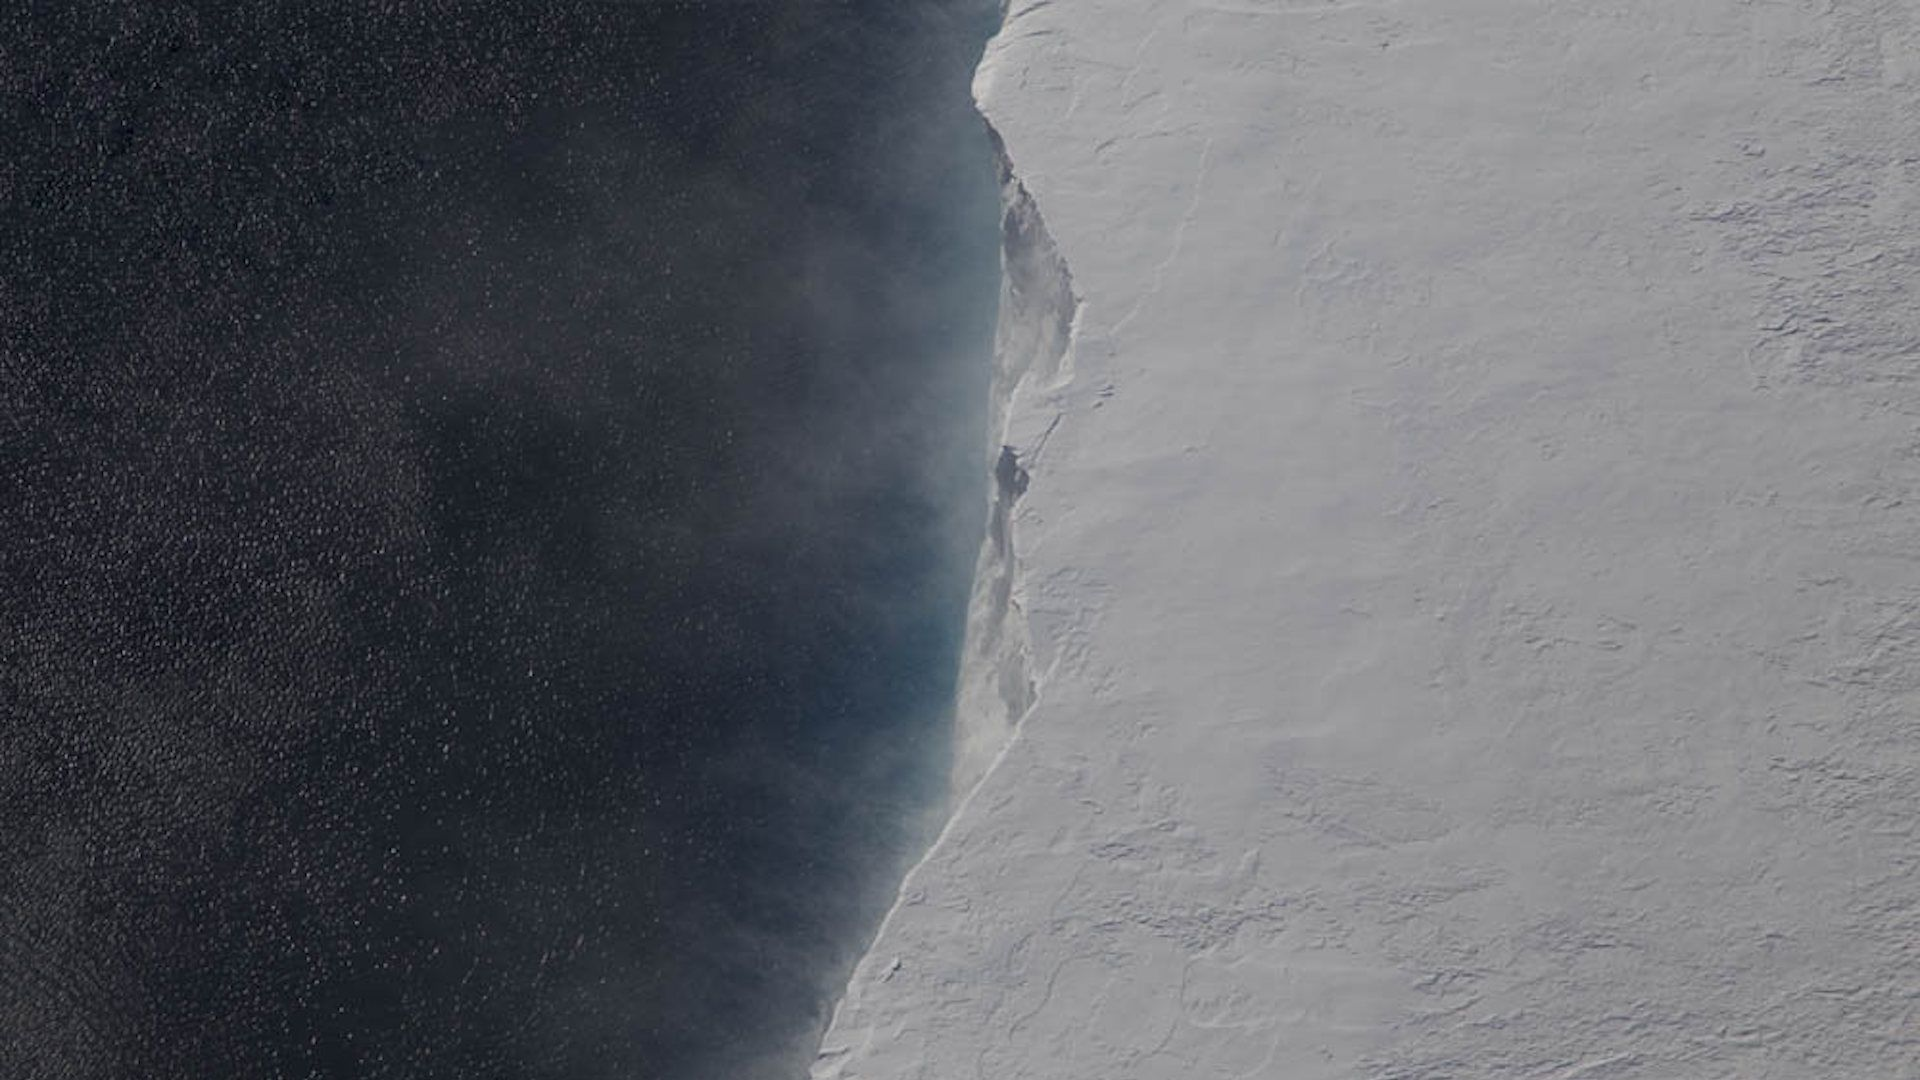 A Monsterous 300-Square-Kilometre Iceberg, Five Times Larger than Manhattan, has just shed Antarctica